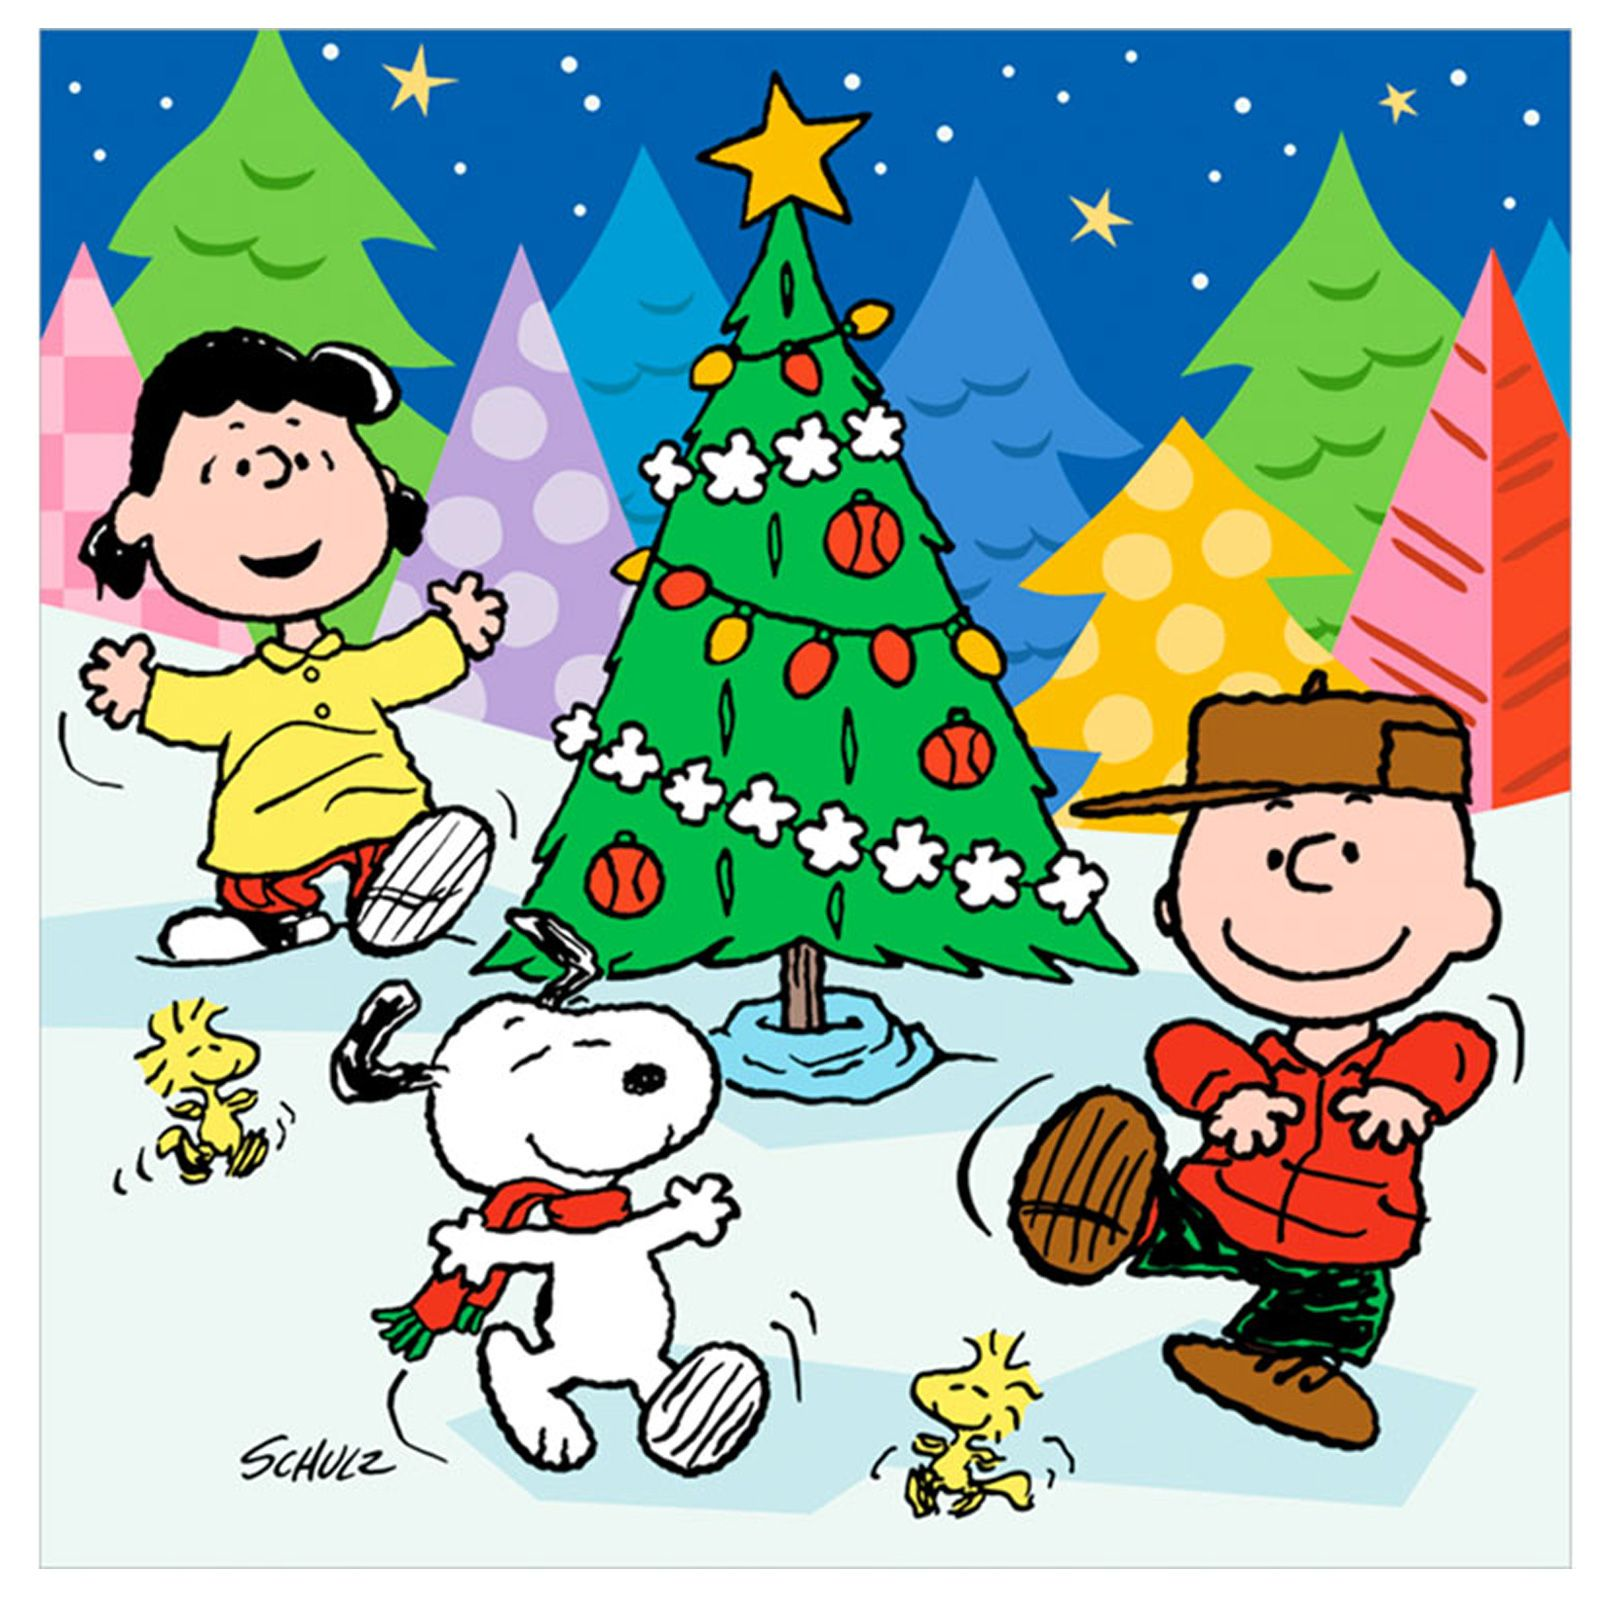 charlie brown peanuts comics snoopy christmas f wallpaper 1600x1600 - Peanuts Christmas